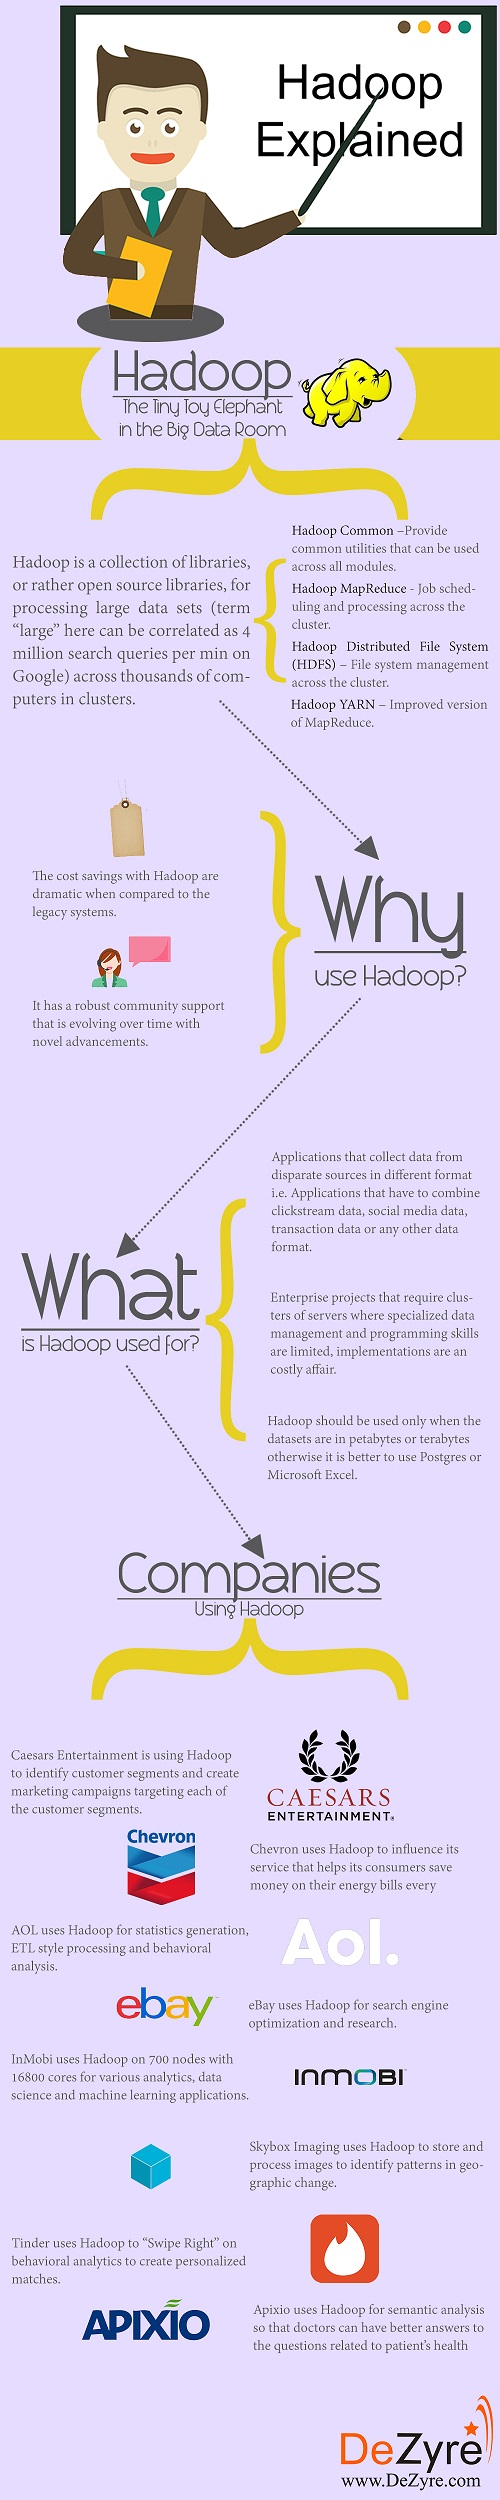 Hadoop Explained What is Hadoop used for